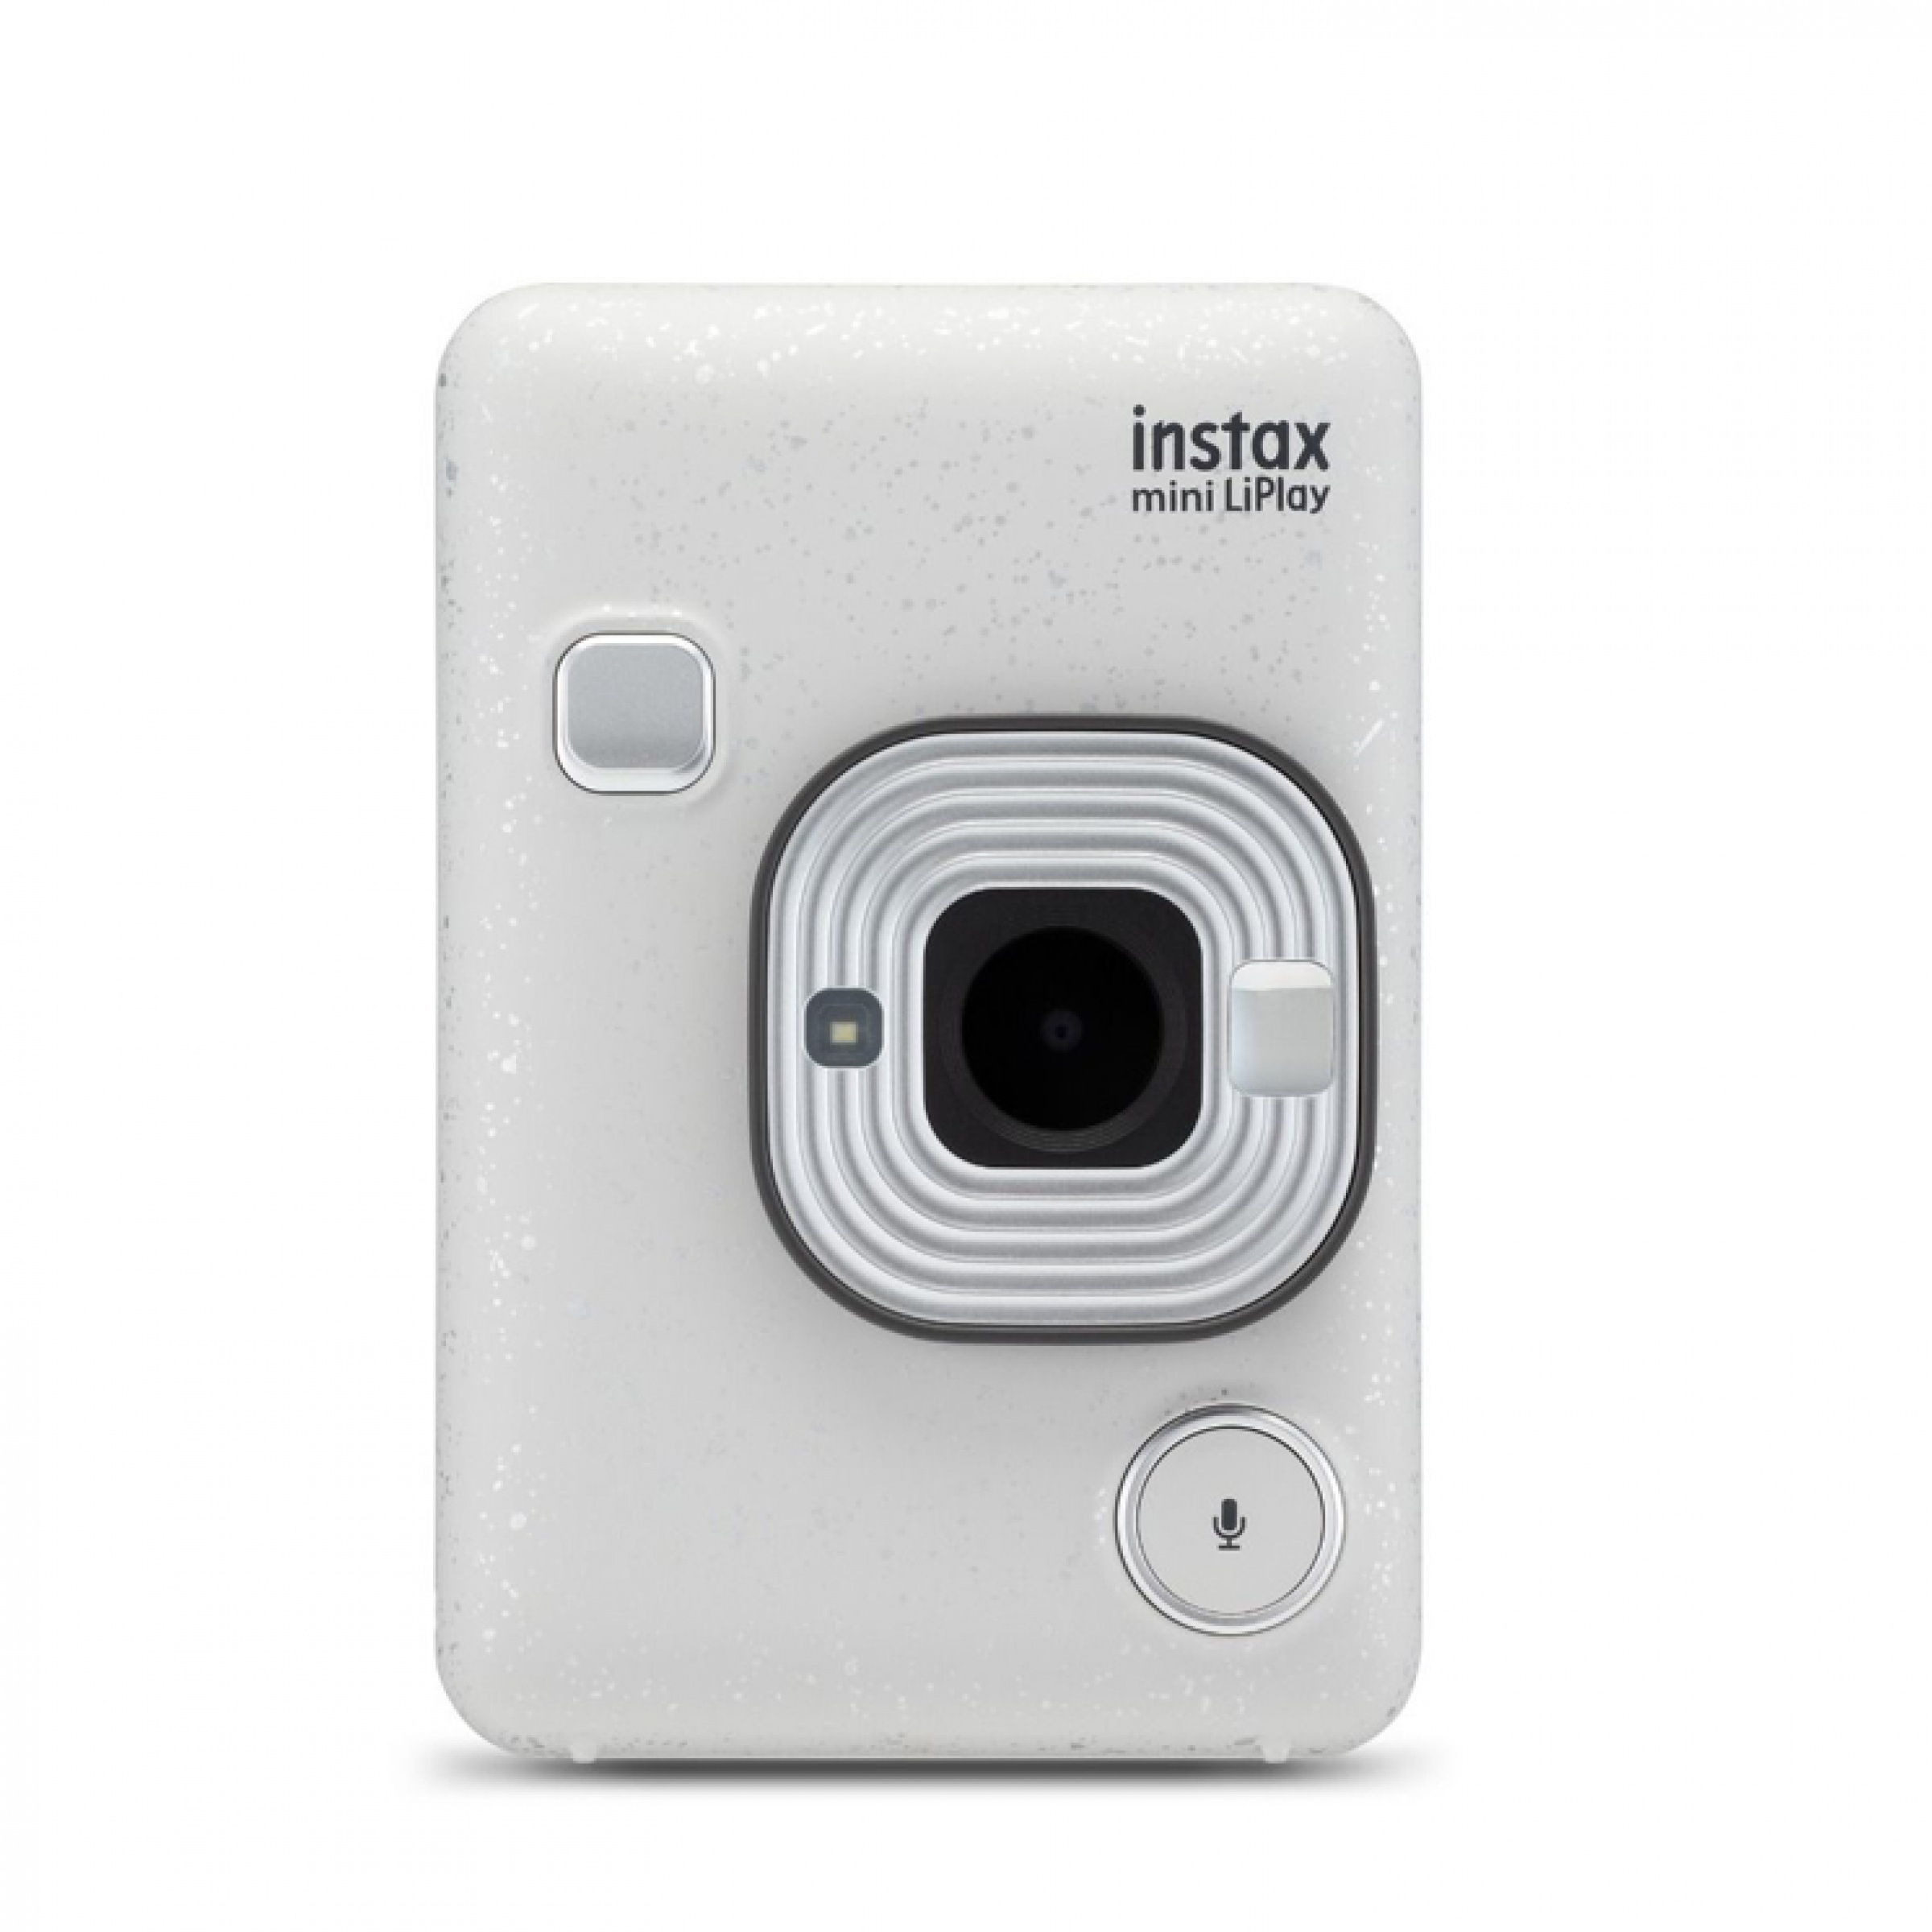 Fuji-Instax-Mini-Liplay-Stone-White